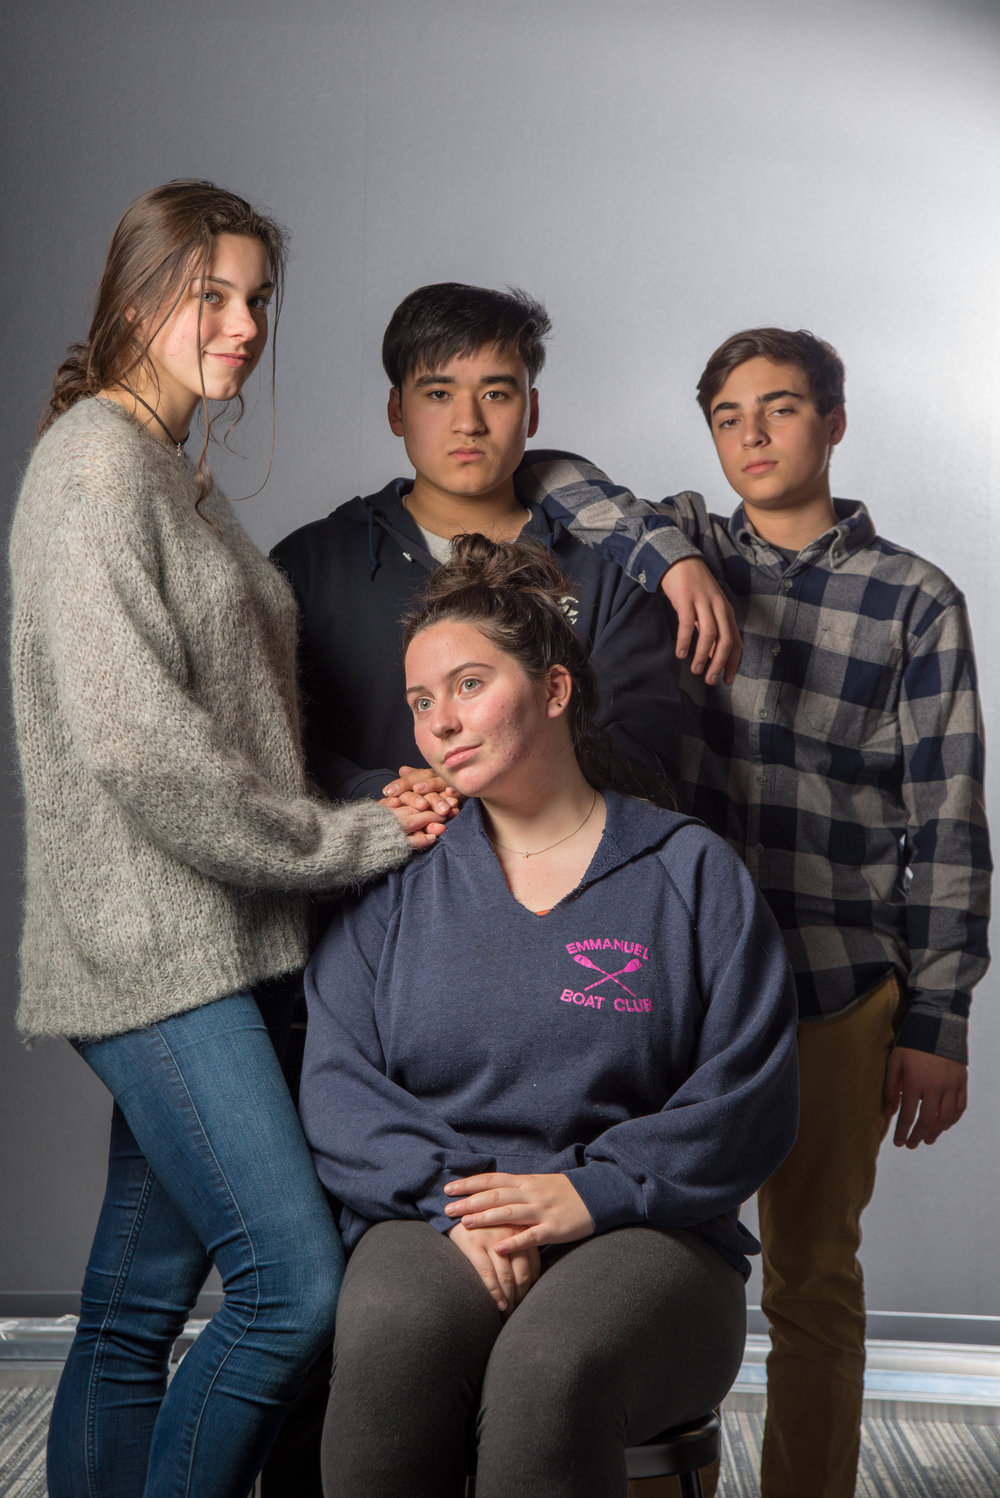 anna, julian, rachel, and nick, 2018